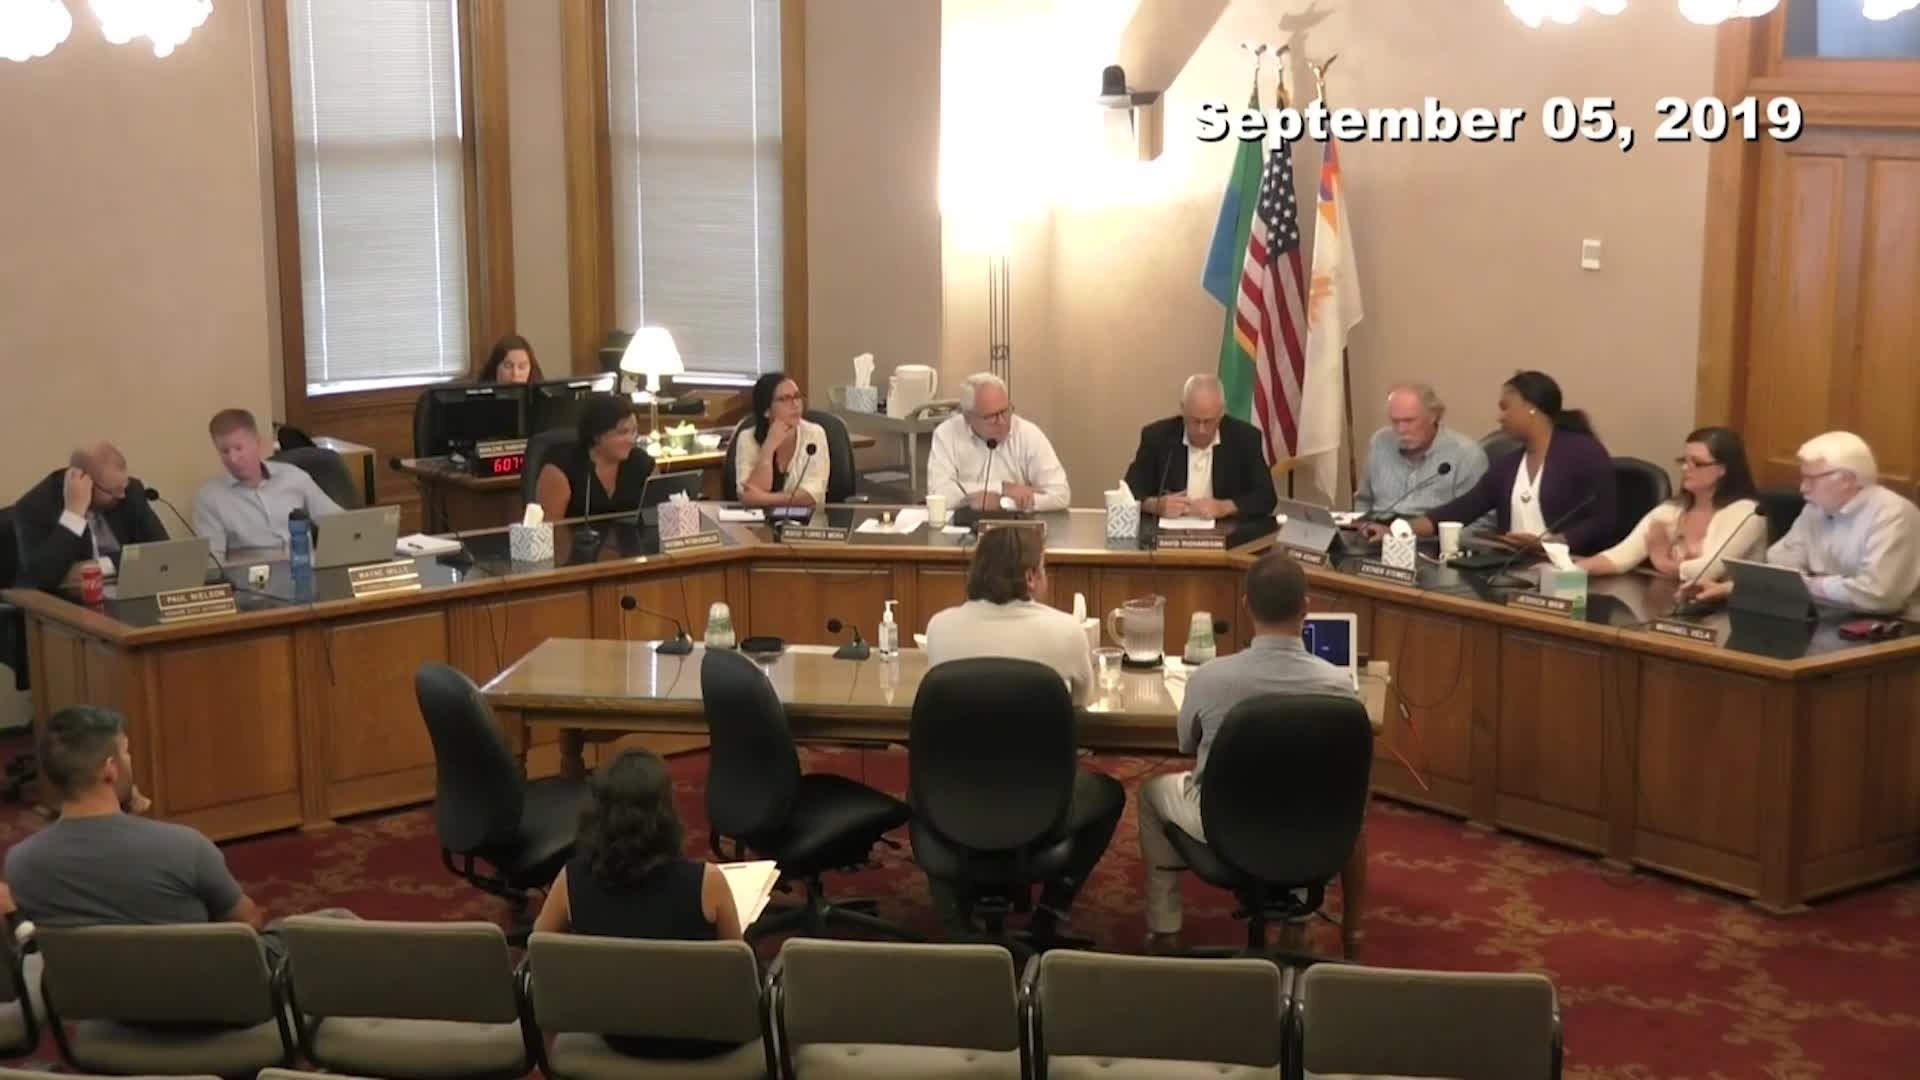 Historic Landmarks Commission Meeting - 09/05/2019